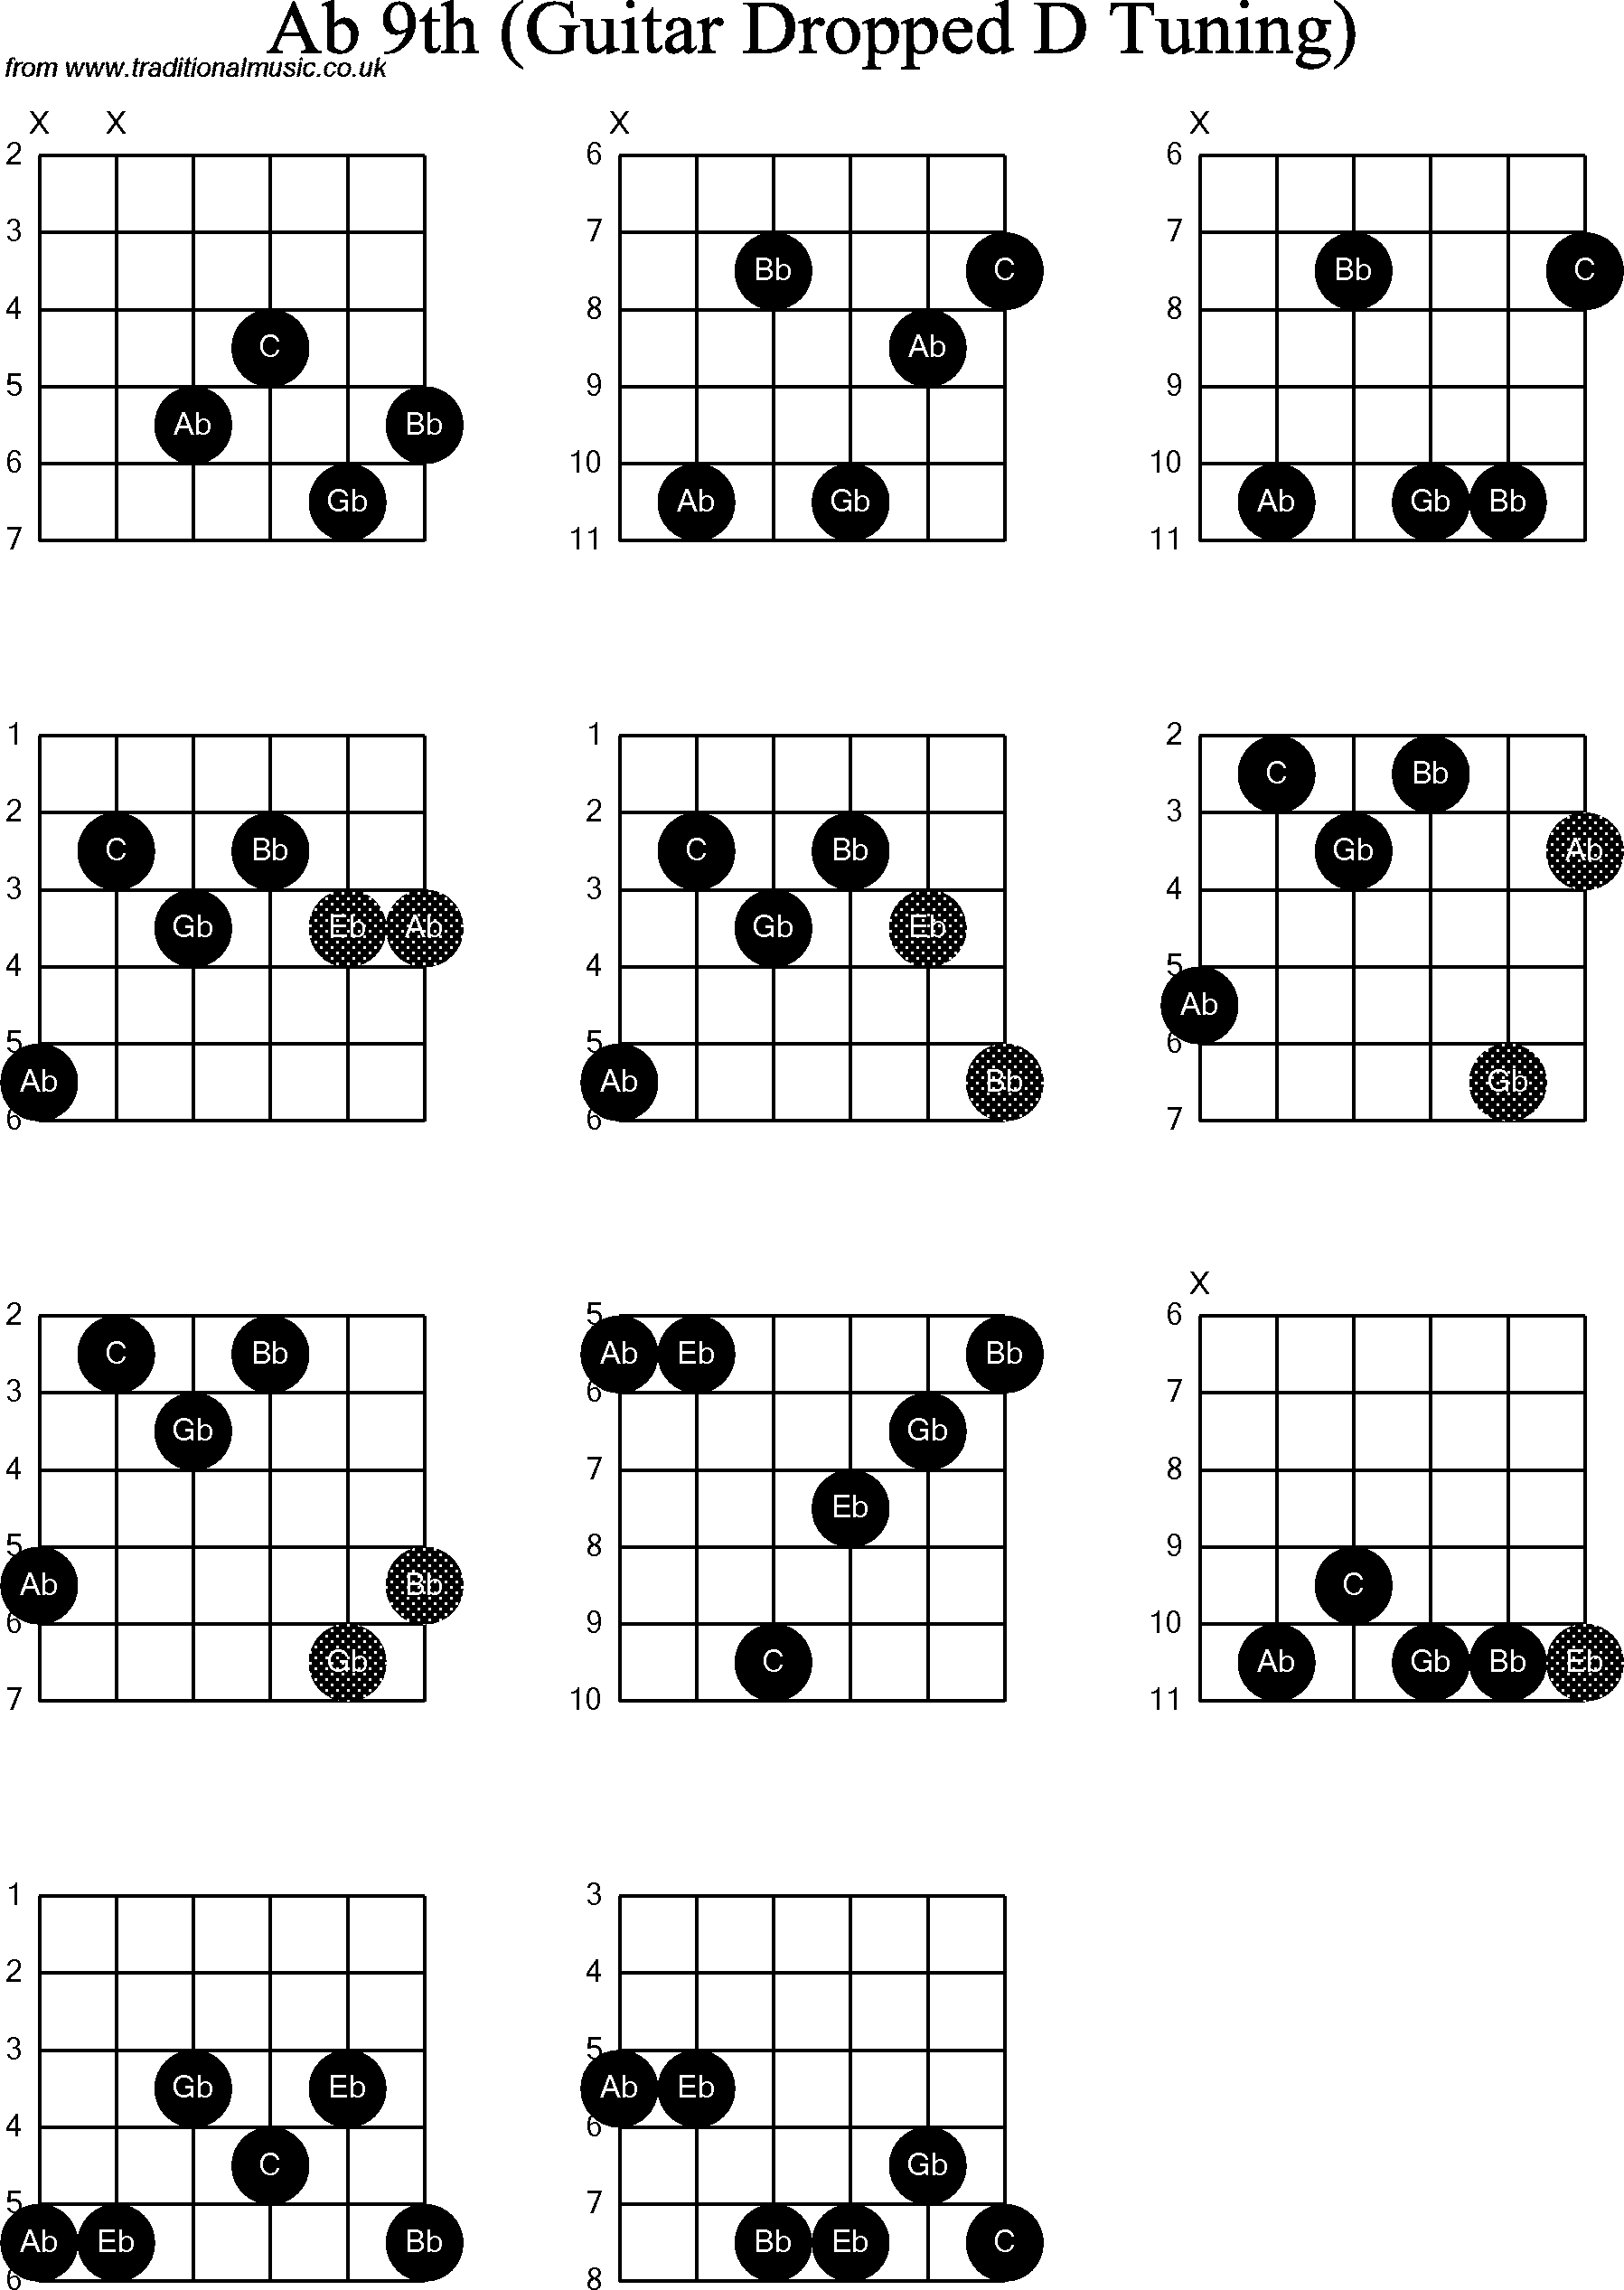 Chord Diagrams For Dropped D Guitardadgbe Ab9th